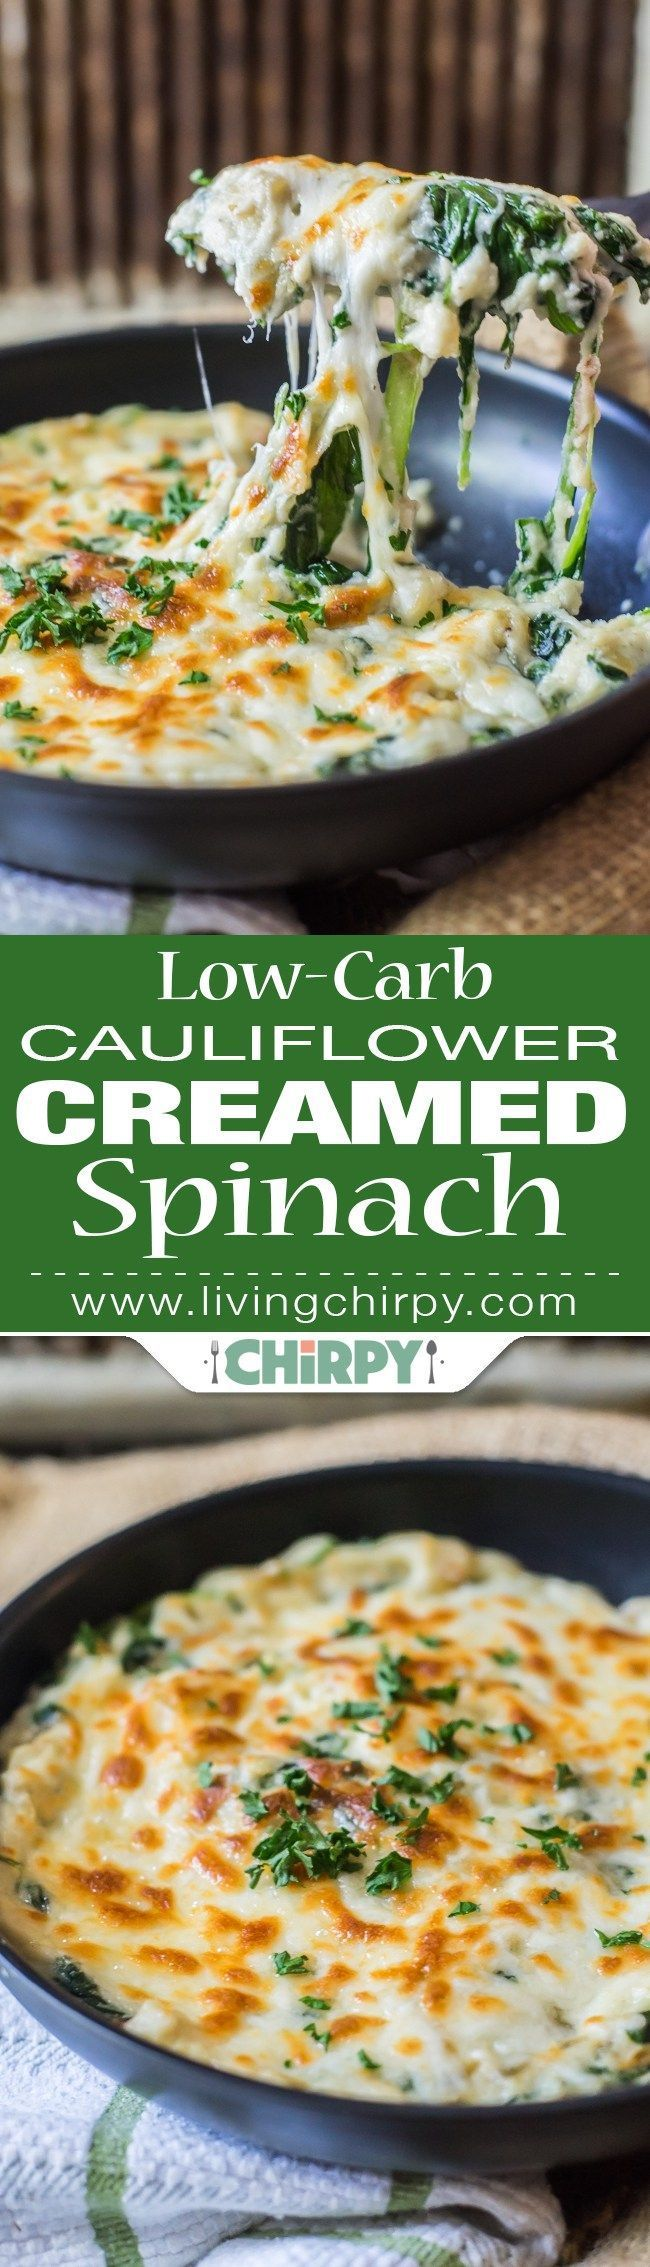 Low-Carb Cauliflower Creamed Spinach -> a perfect low-carb vegetable side dish. easily trick the kids & DH into eating veggies!